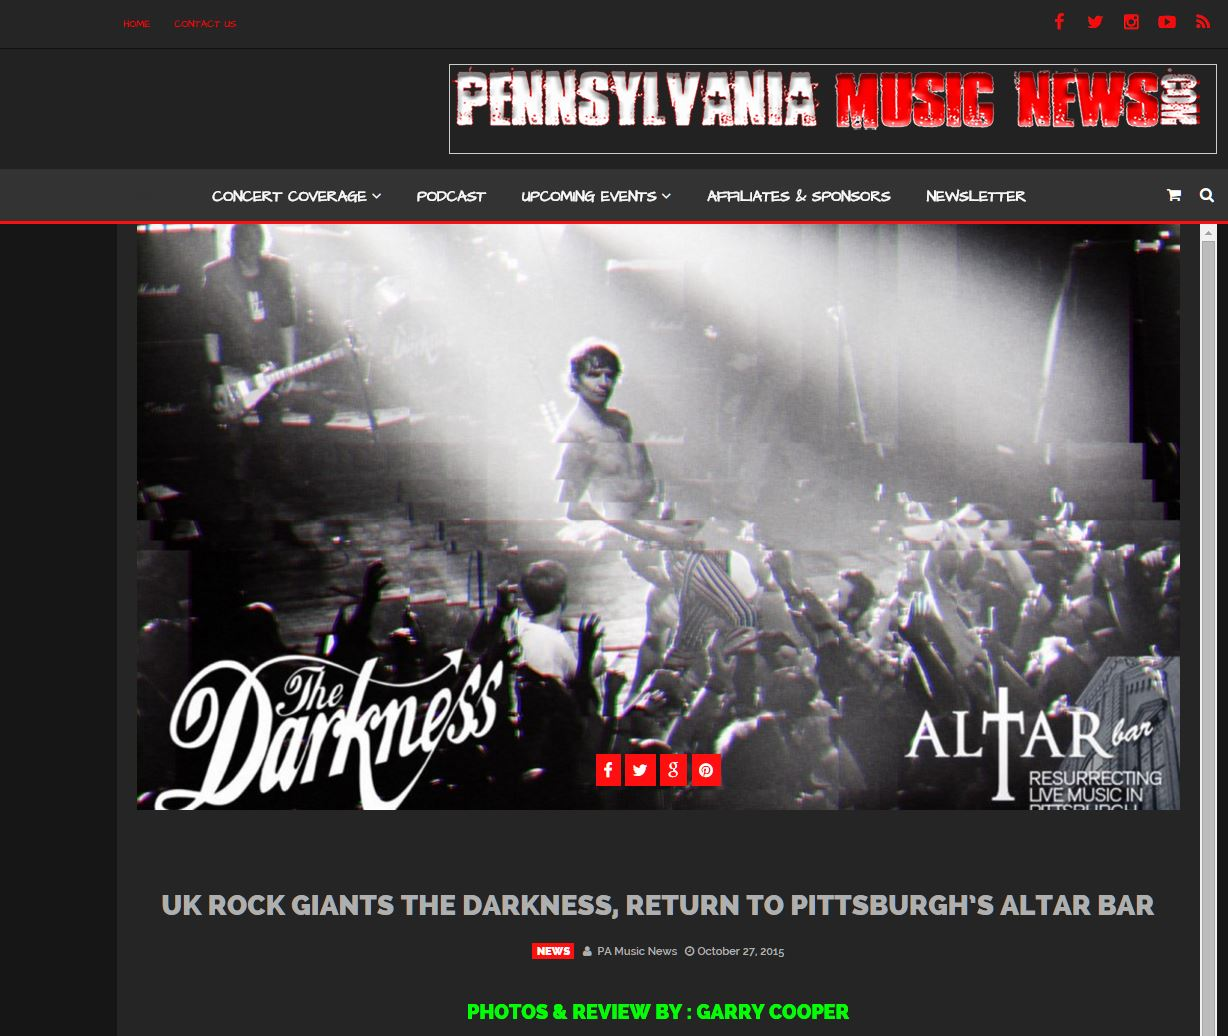 Concert review and photographs set 2 from The Darkness @ The Altar Bar  (Pennsylvania Music News)